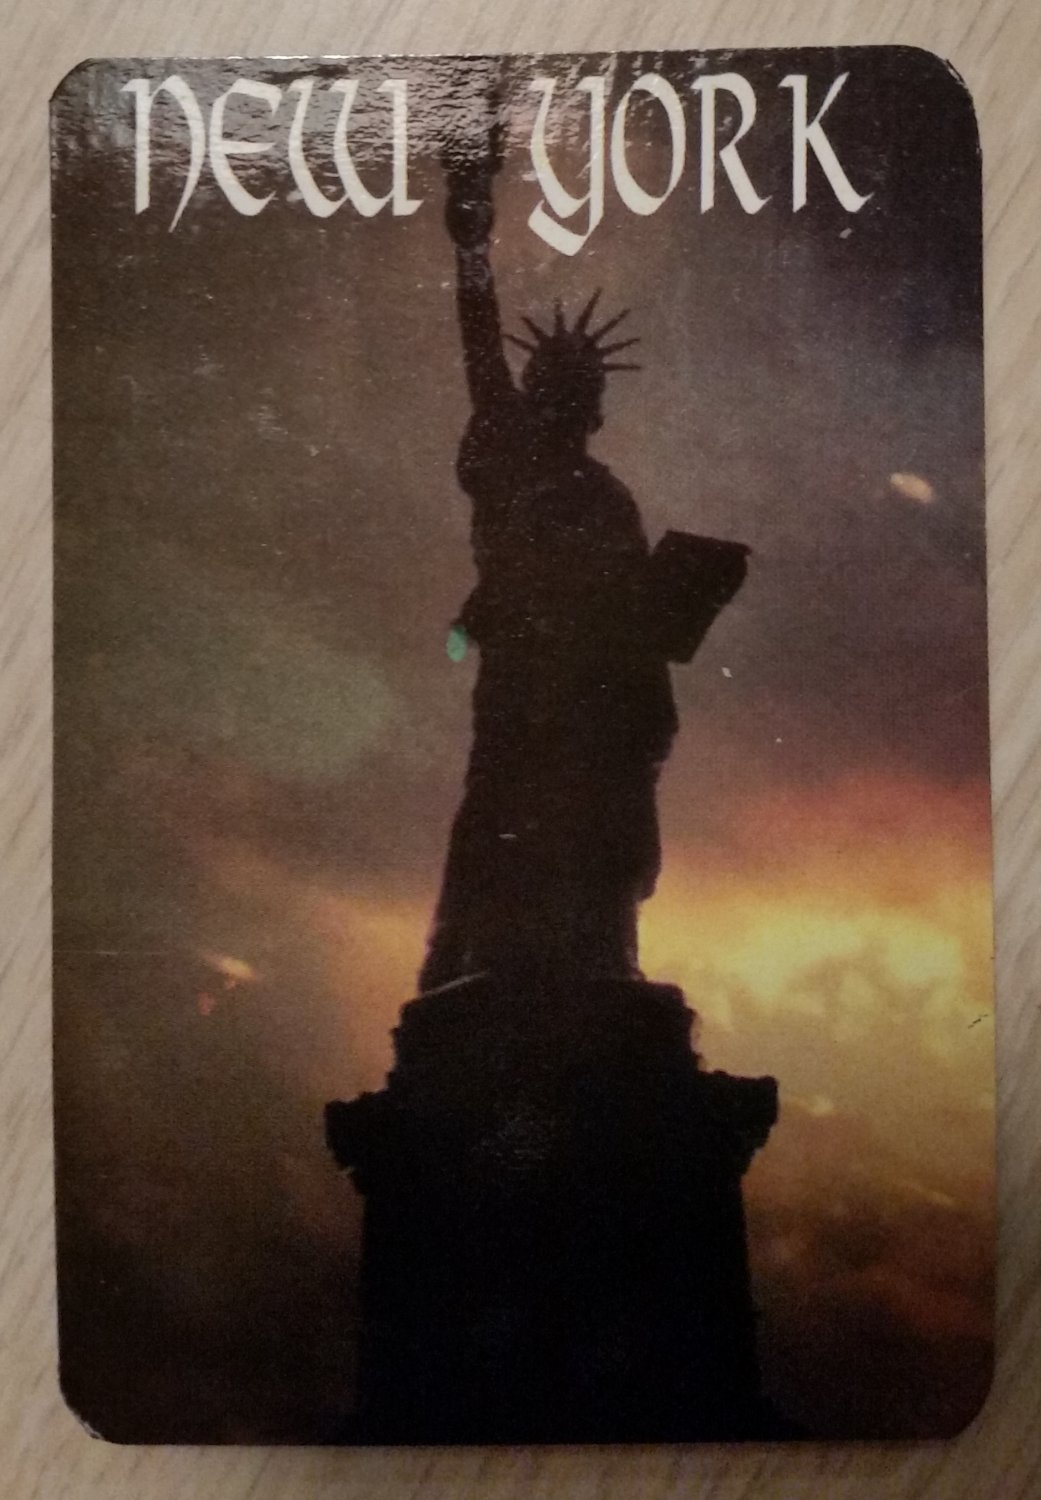 NEW YORK STATUE OF LIBERTY SILHOUETTE Credit Card Size Address Book Accordion Style-Magnetic Closure